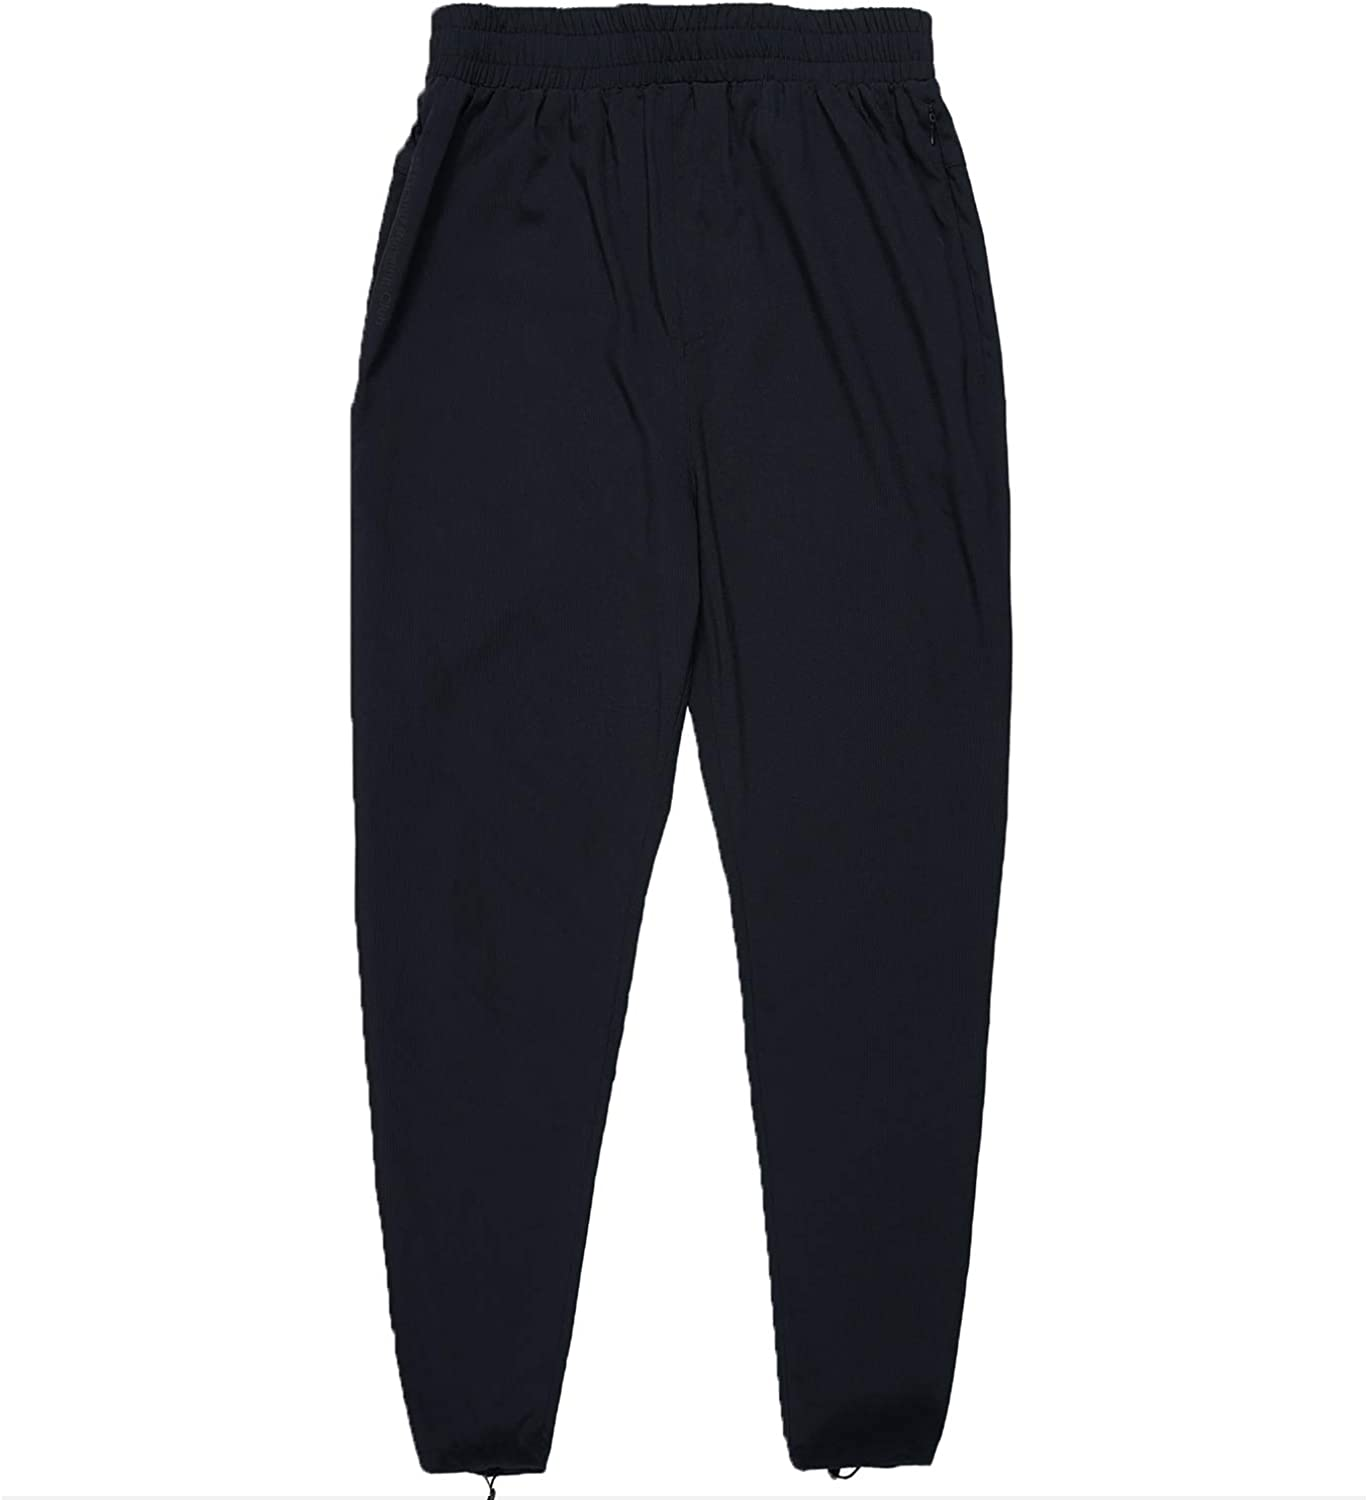 Grand Running Club - Asphalt OFFicial shop Everyday Pant Stretch Ranking TOP7 4-Way Mens S